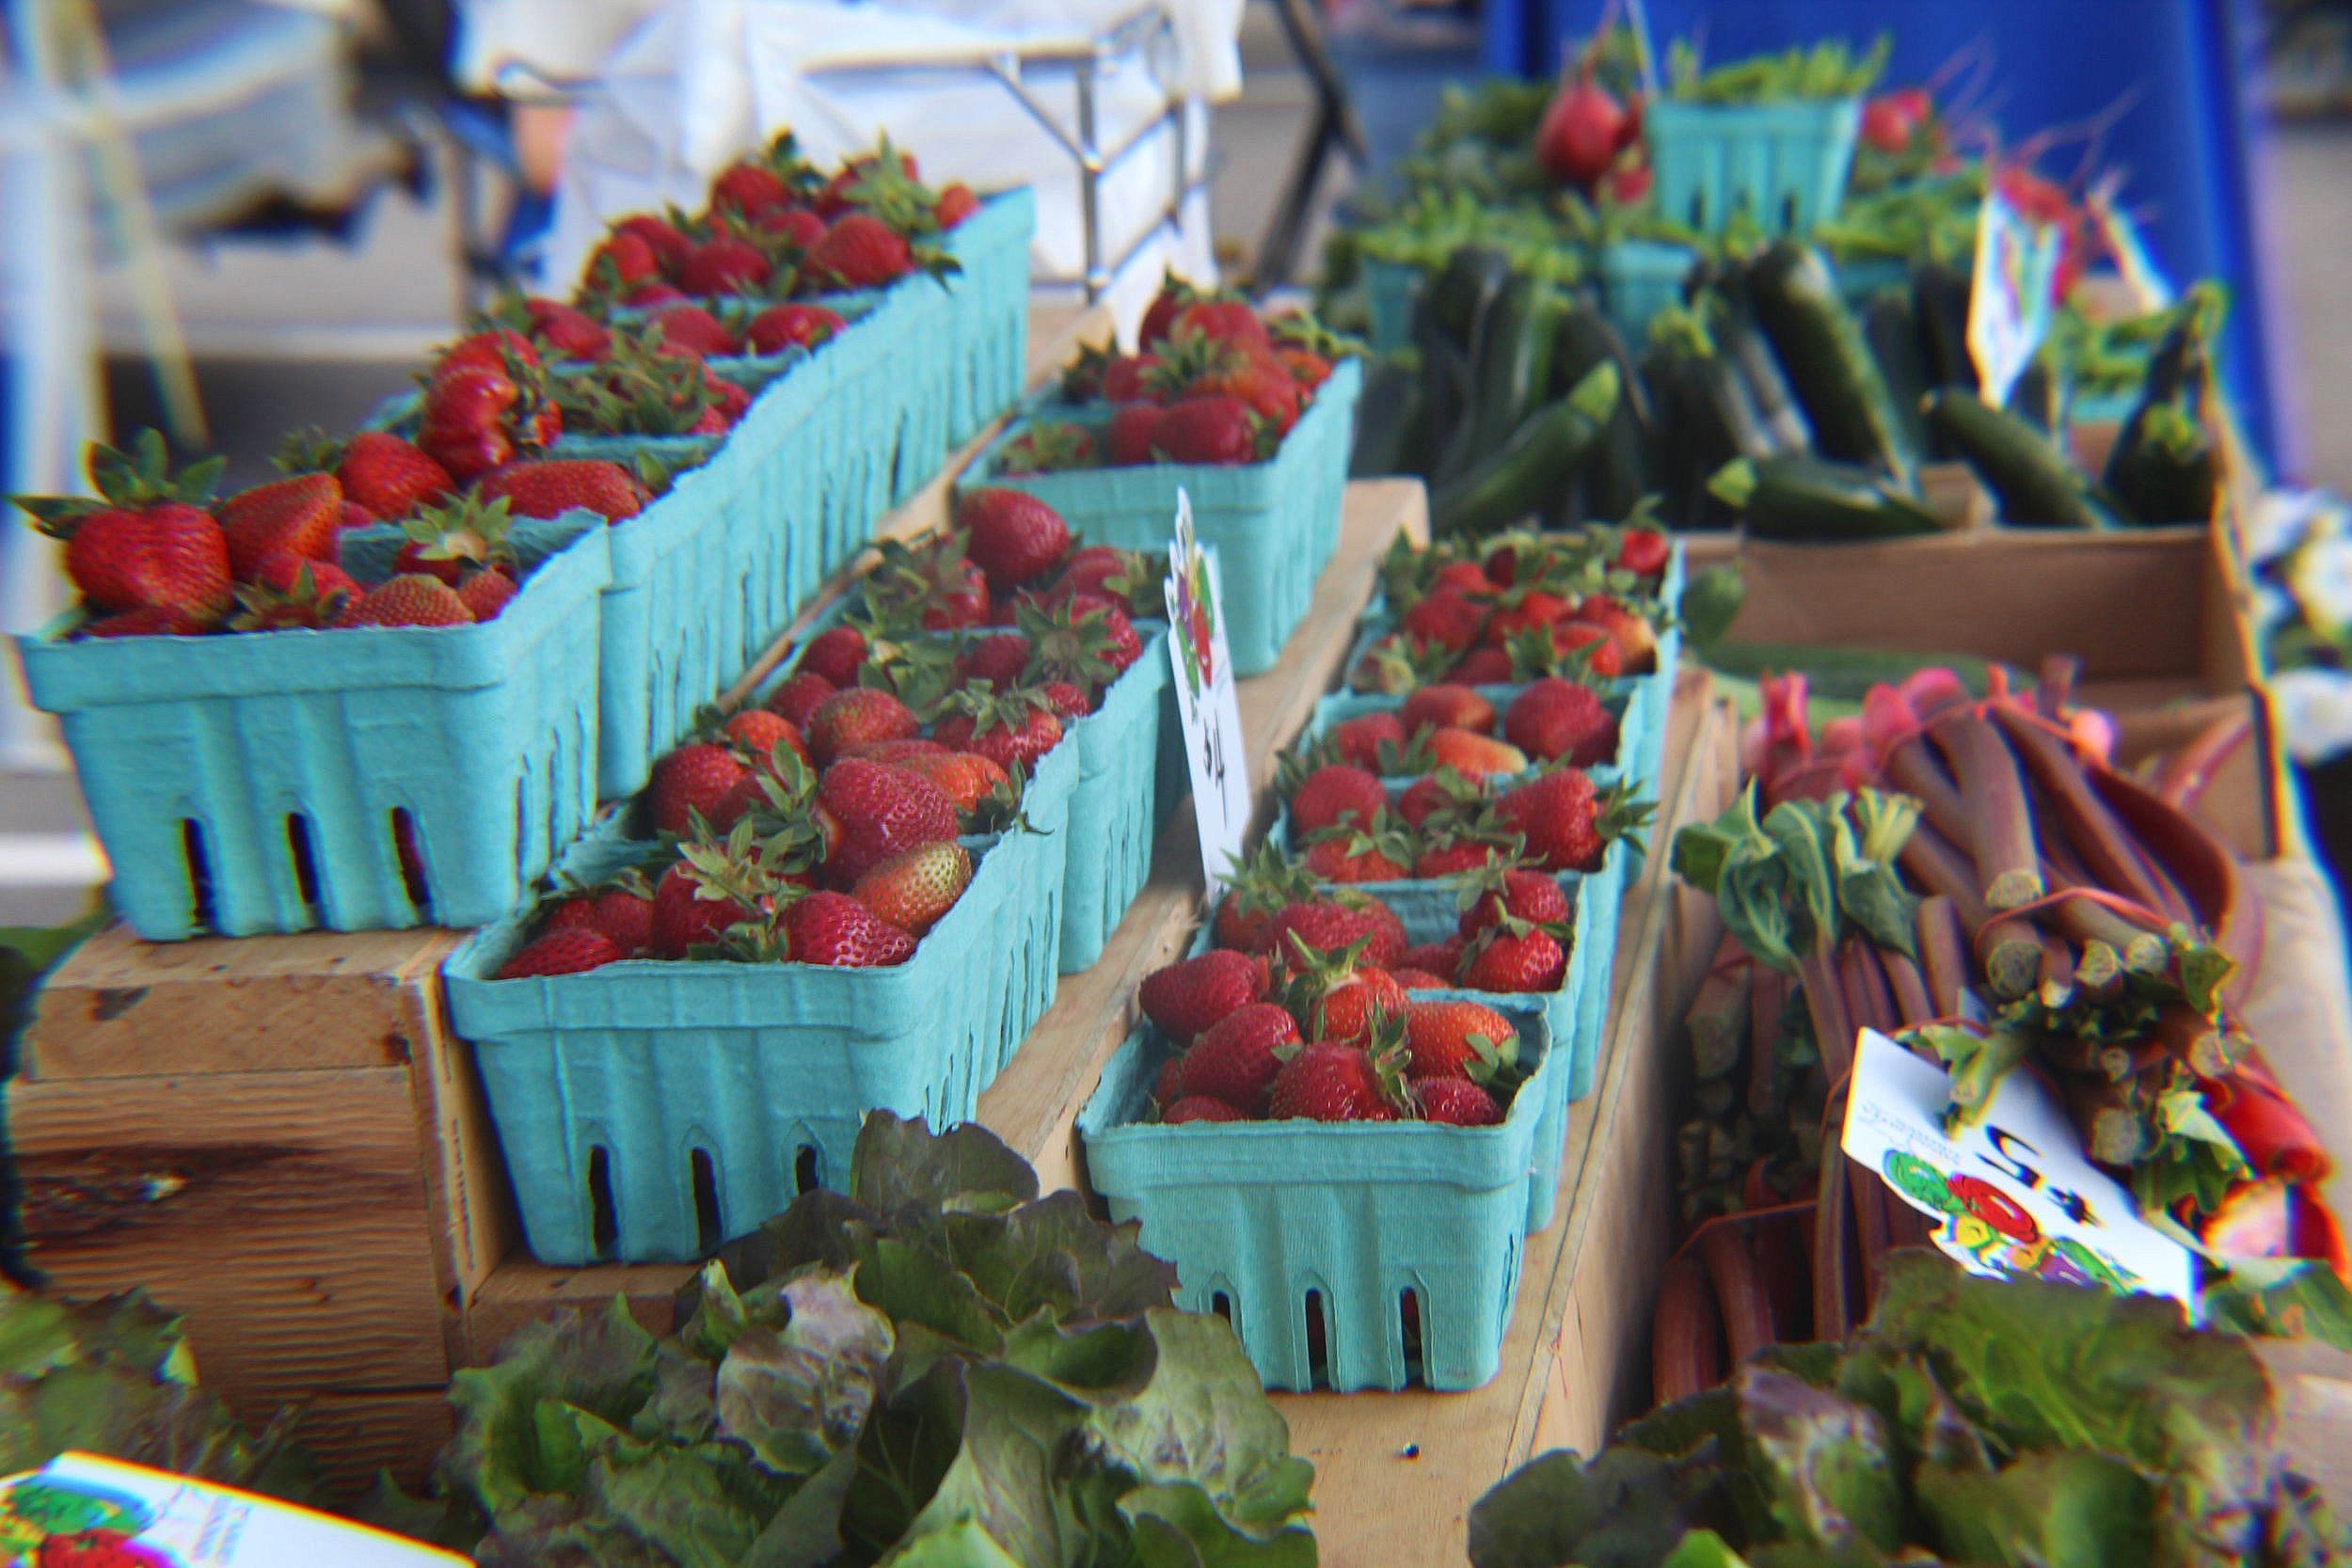 Picture of produce at Rogers Farmers Market